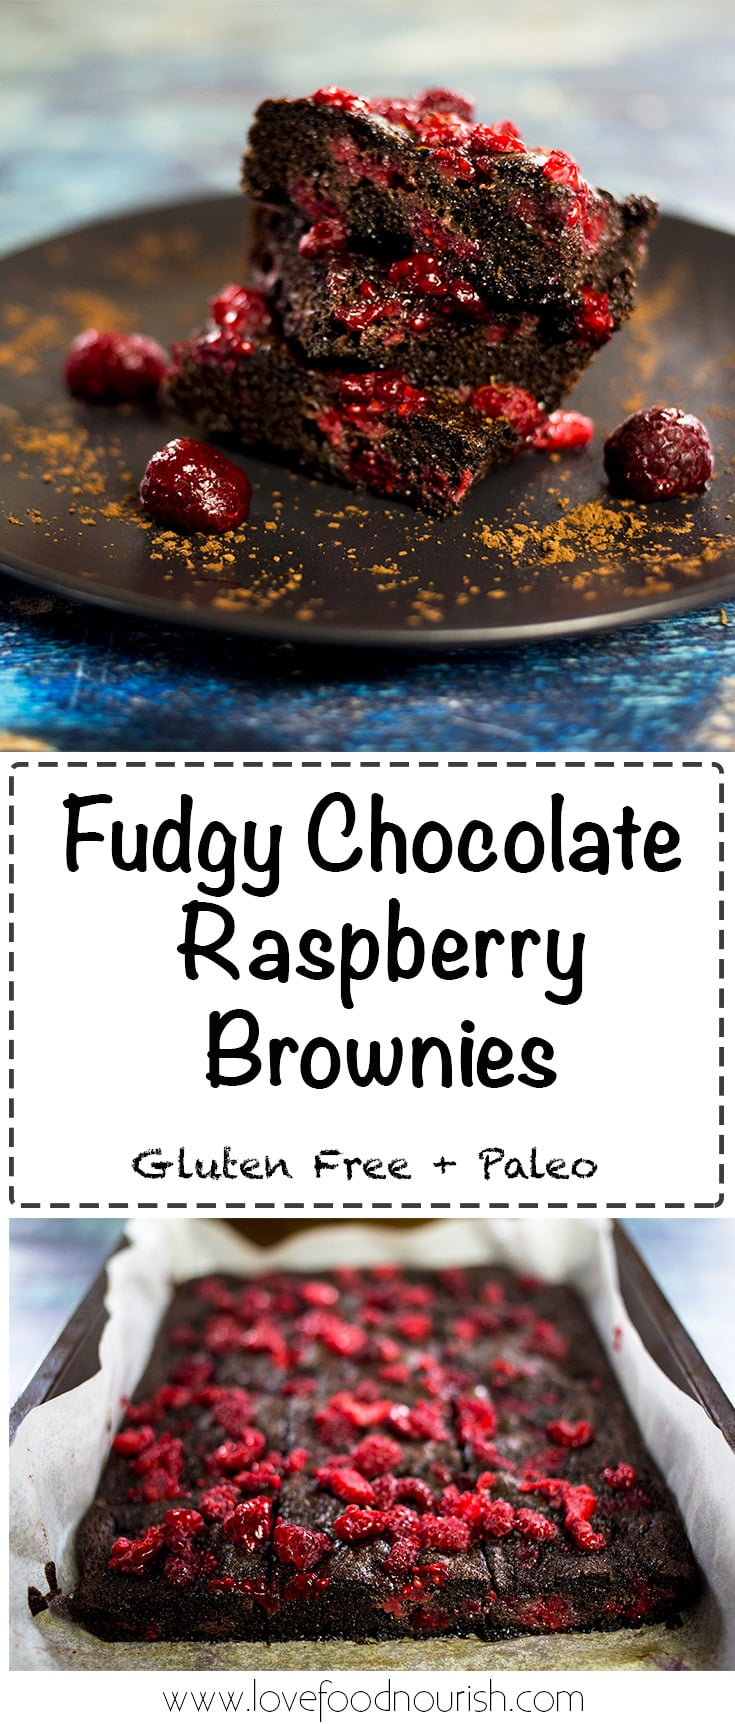 Chocolate Raspberry Brownies (Gluten Free & Paleo) - These fudgy, moist, chocolatey brownies are everything you ever wanted in a brownie. The chocolatey goodness goes perfectly against the sharpness of the raspberries. They are gluten free, grain free, plaleo and refined sugar free. Gluten Free Recipe | Paleo Recipe